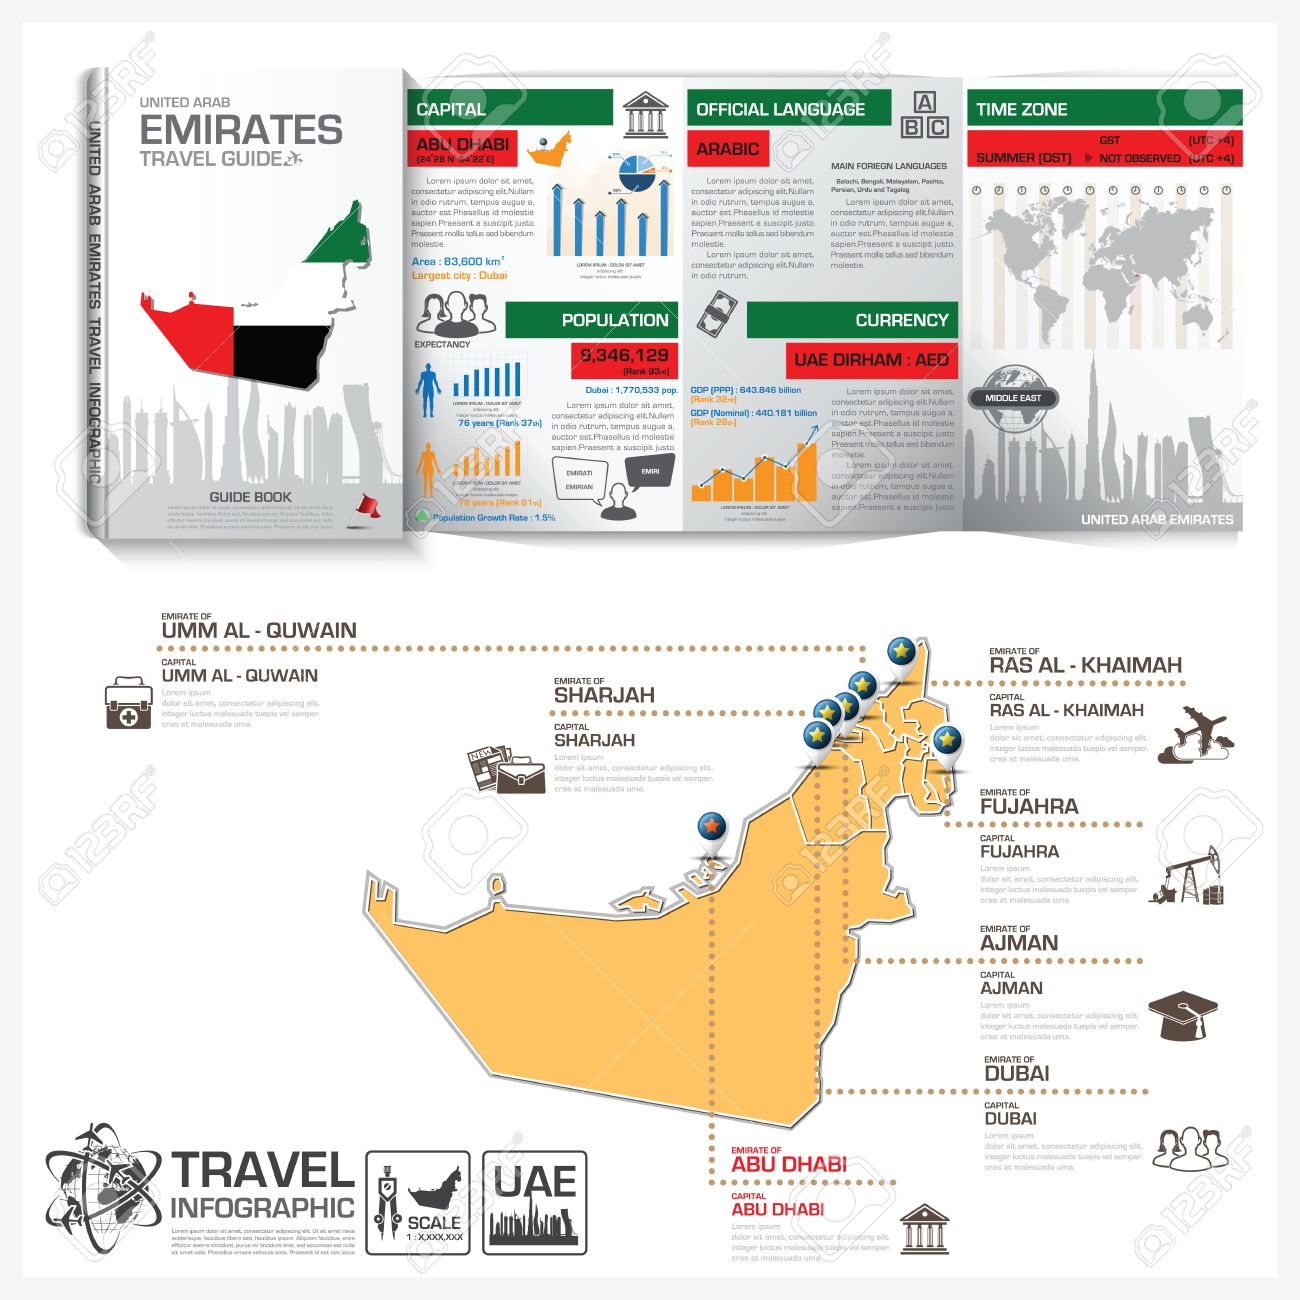 united arab emirates travel guide book business infographic with